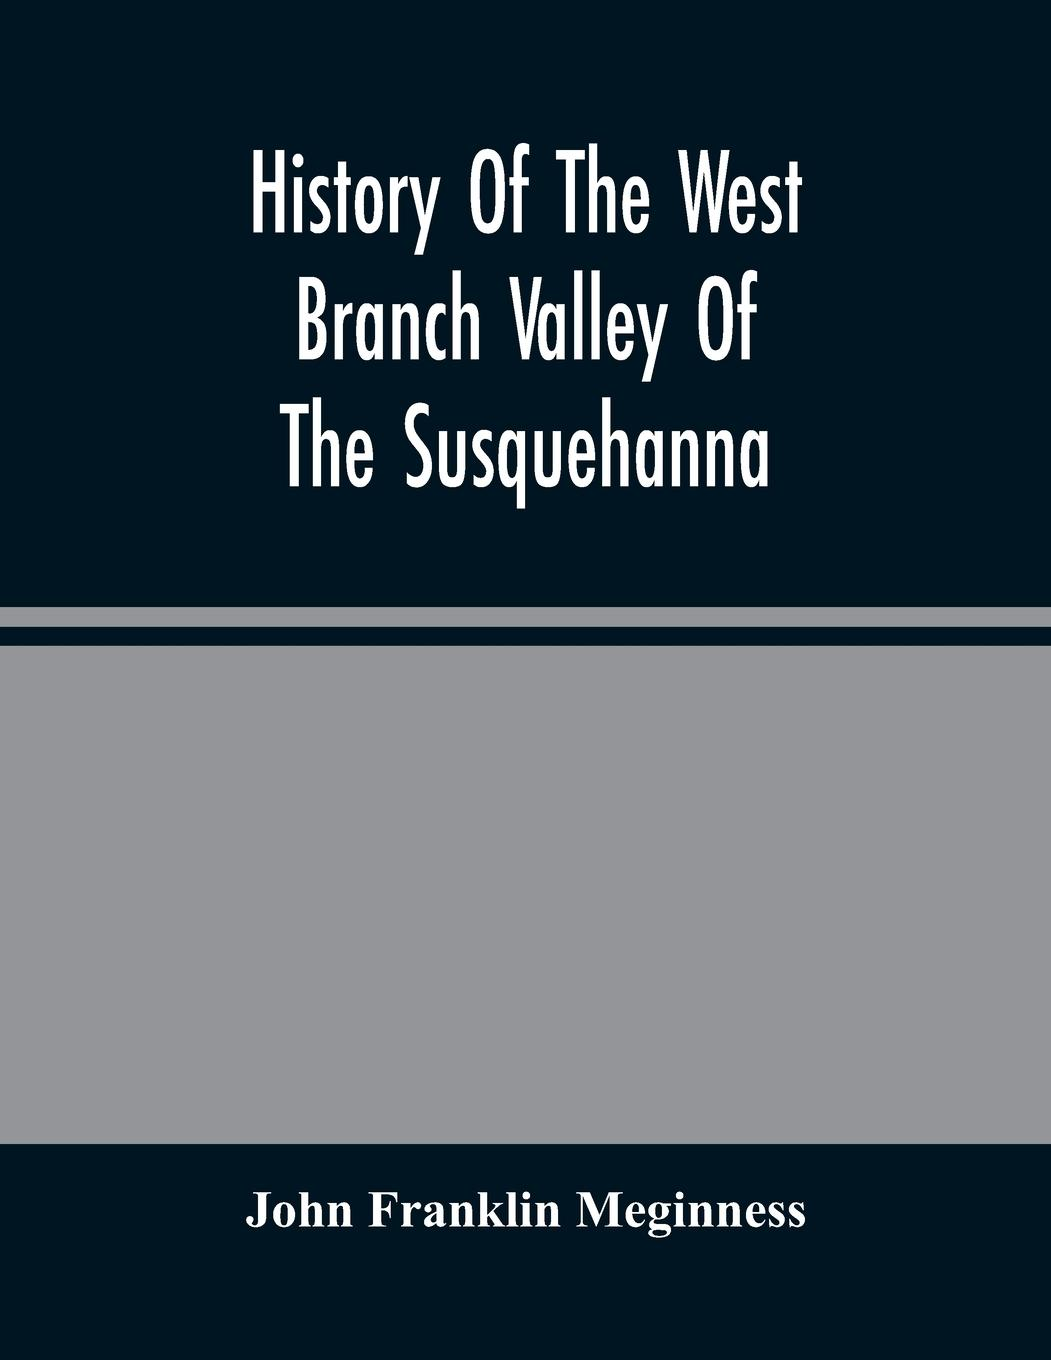 History Of The West Branch Valley Of The Susquehanna: Its First Settlement, Privations Endured By The Early Pioneers, Indian Wars, Predatory Incusions - Franklin Meginness, John